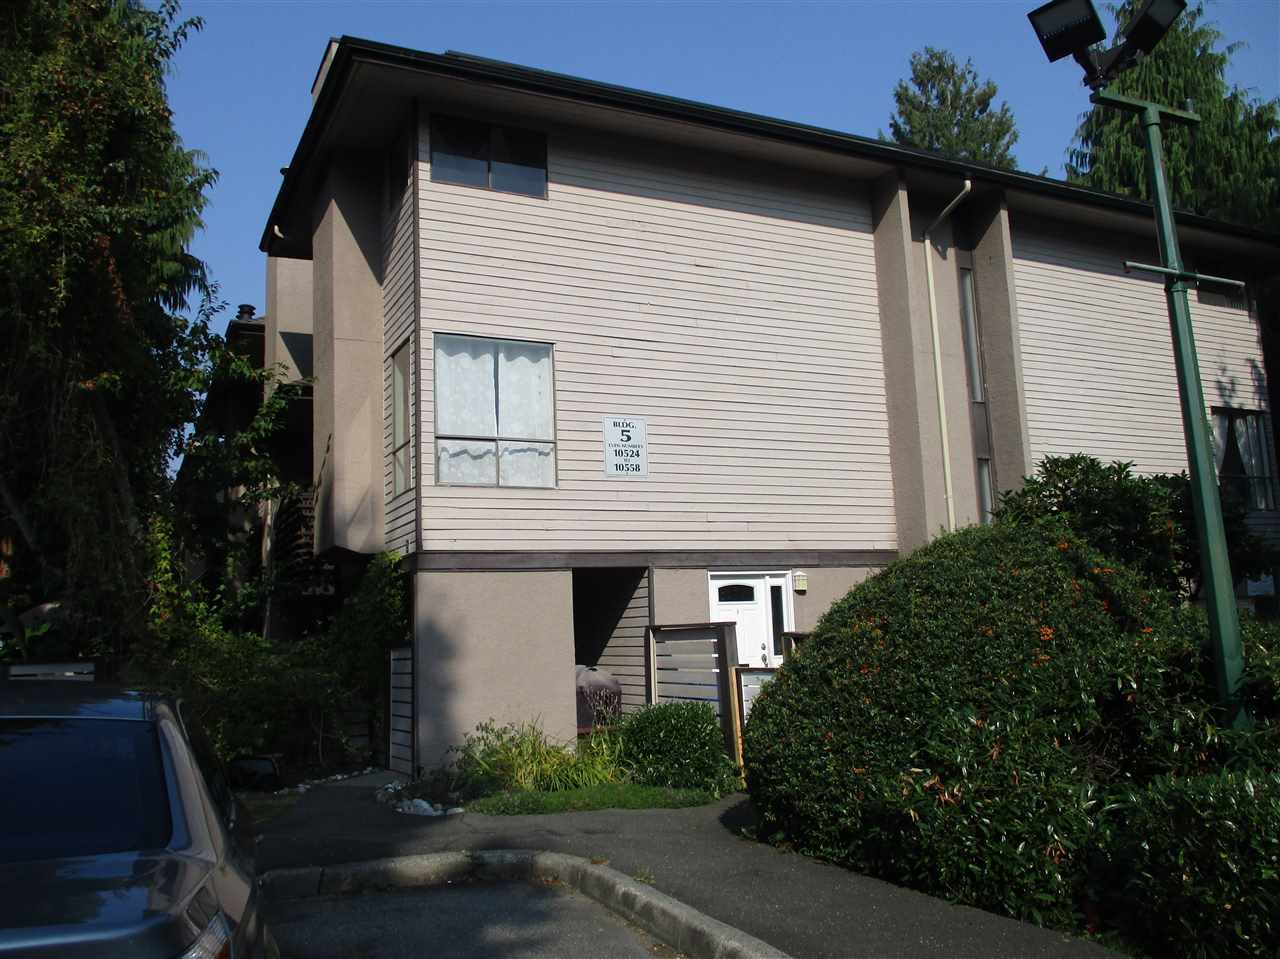 """Main Photo: 10550 HOLLY PARK Lane in Surrey: Guildford Townhouse for sale in """"Holly Park"""" (North Surrey)  : MLS®# R2498692"""